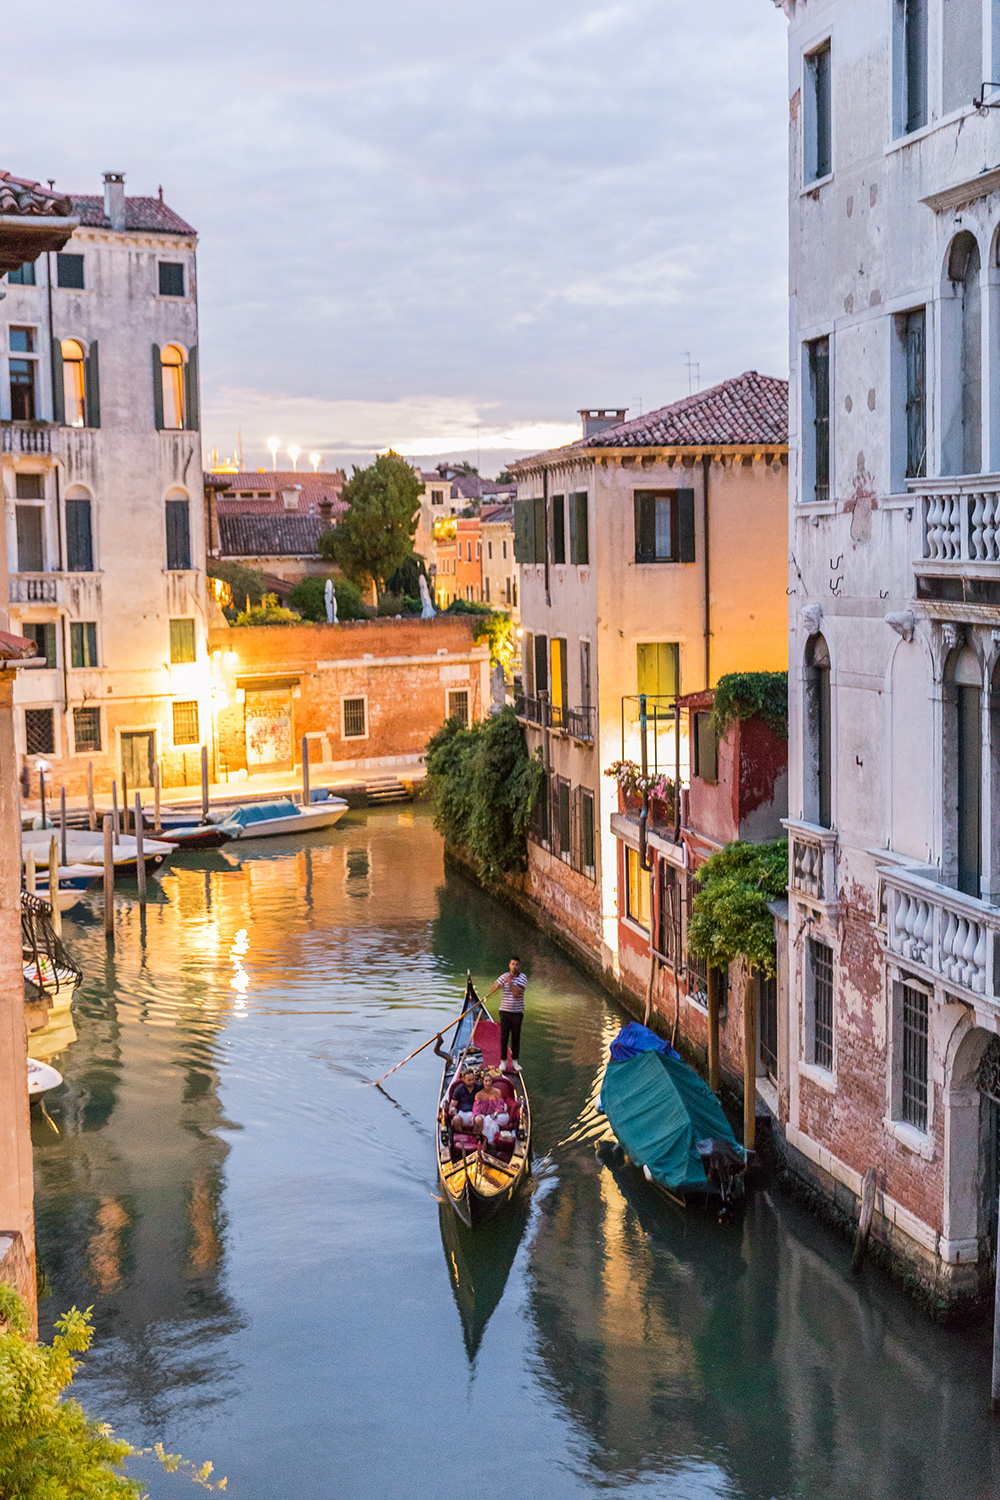 the canal view in the evening is truly charming and romantic